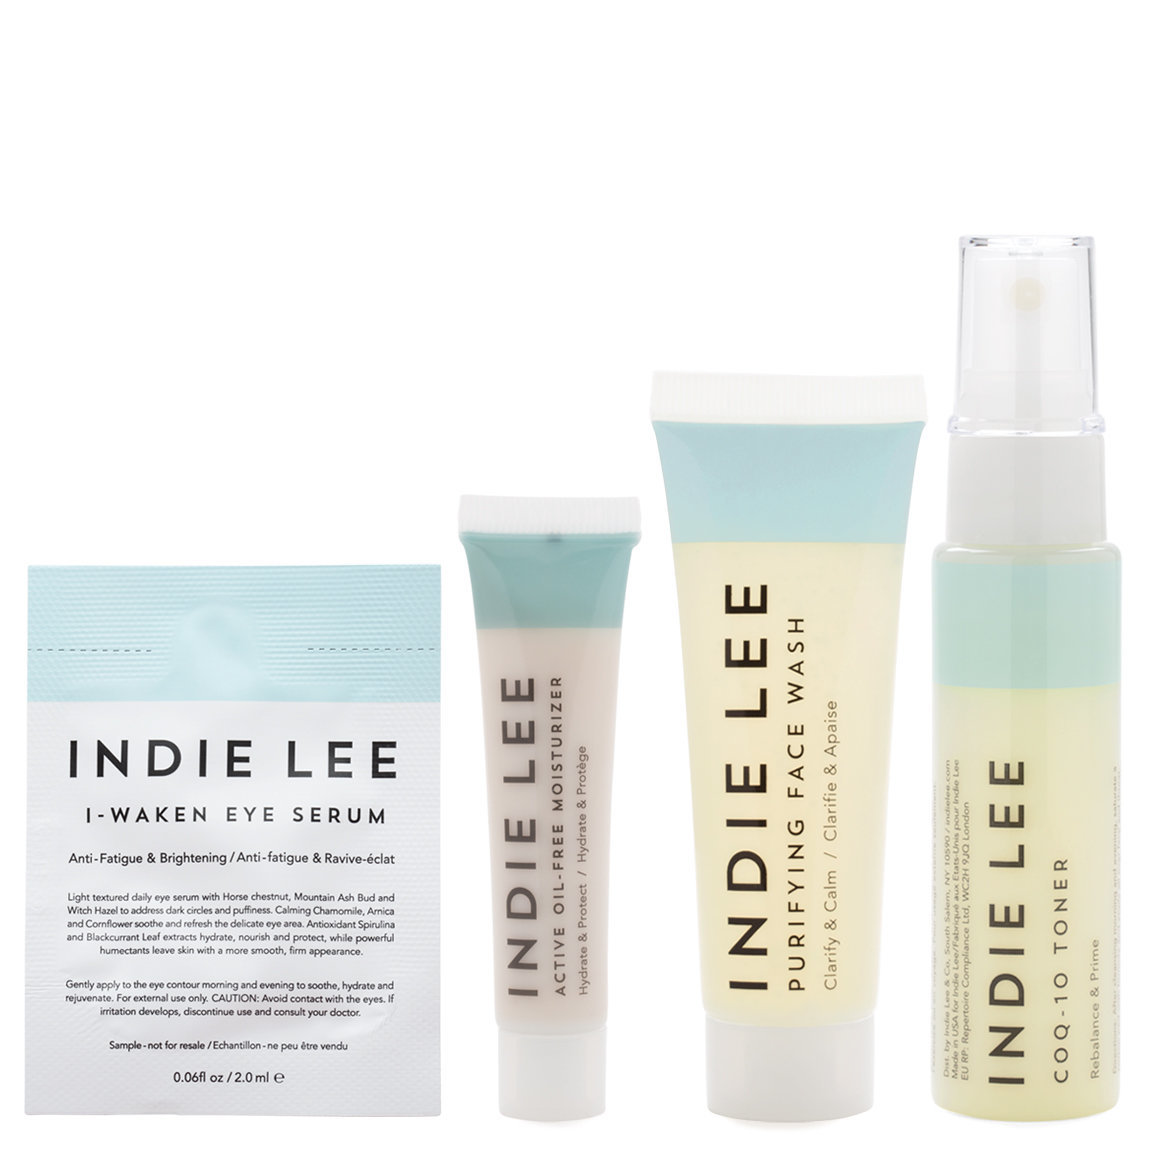 Indie Lee Clarity Kit product smear.